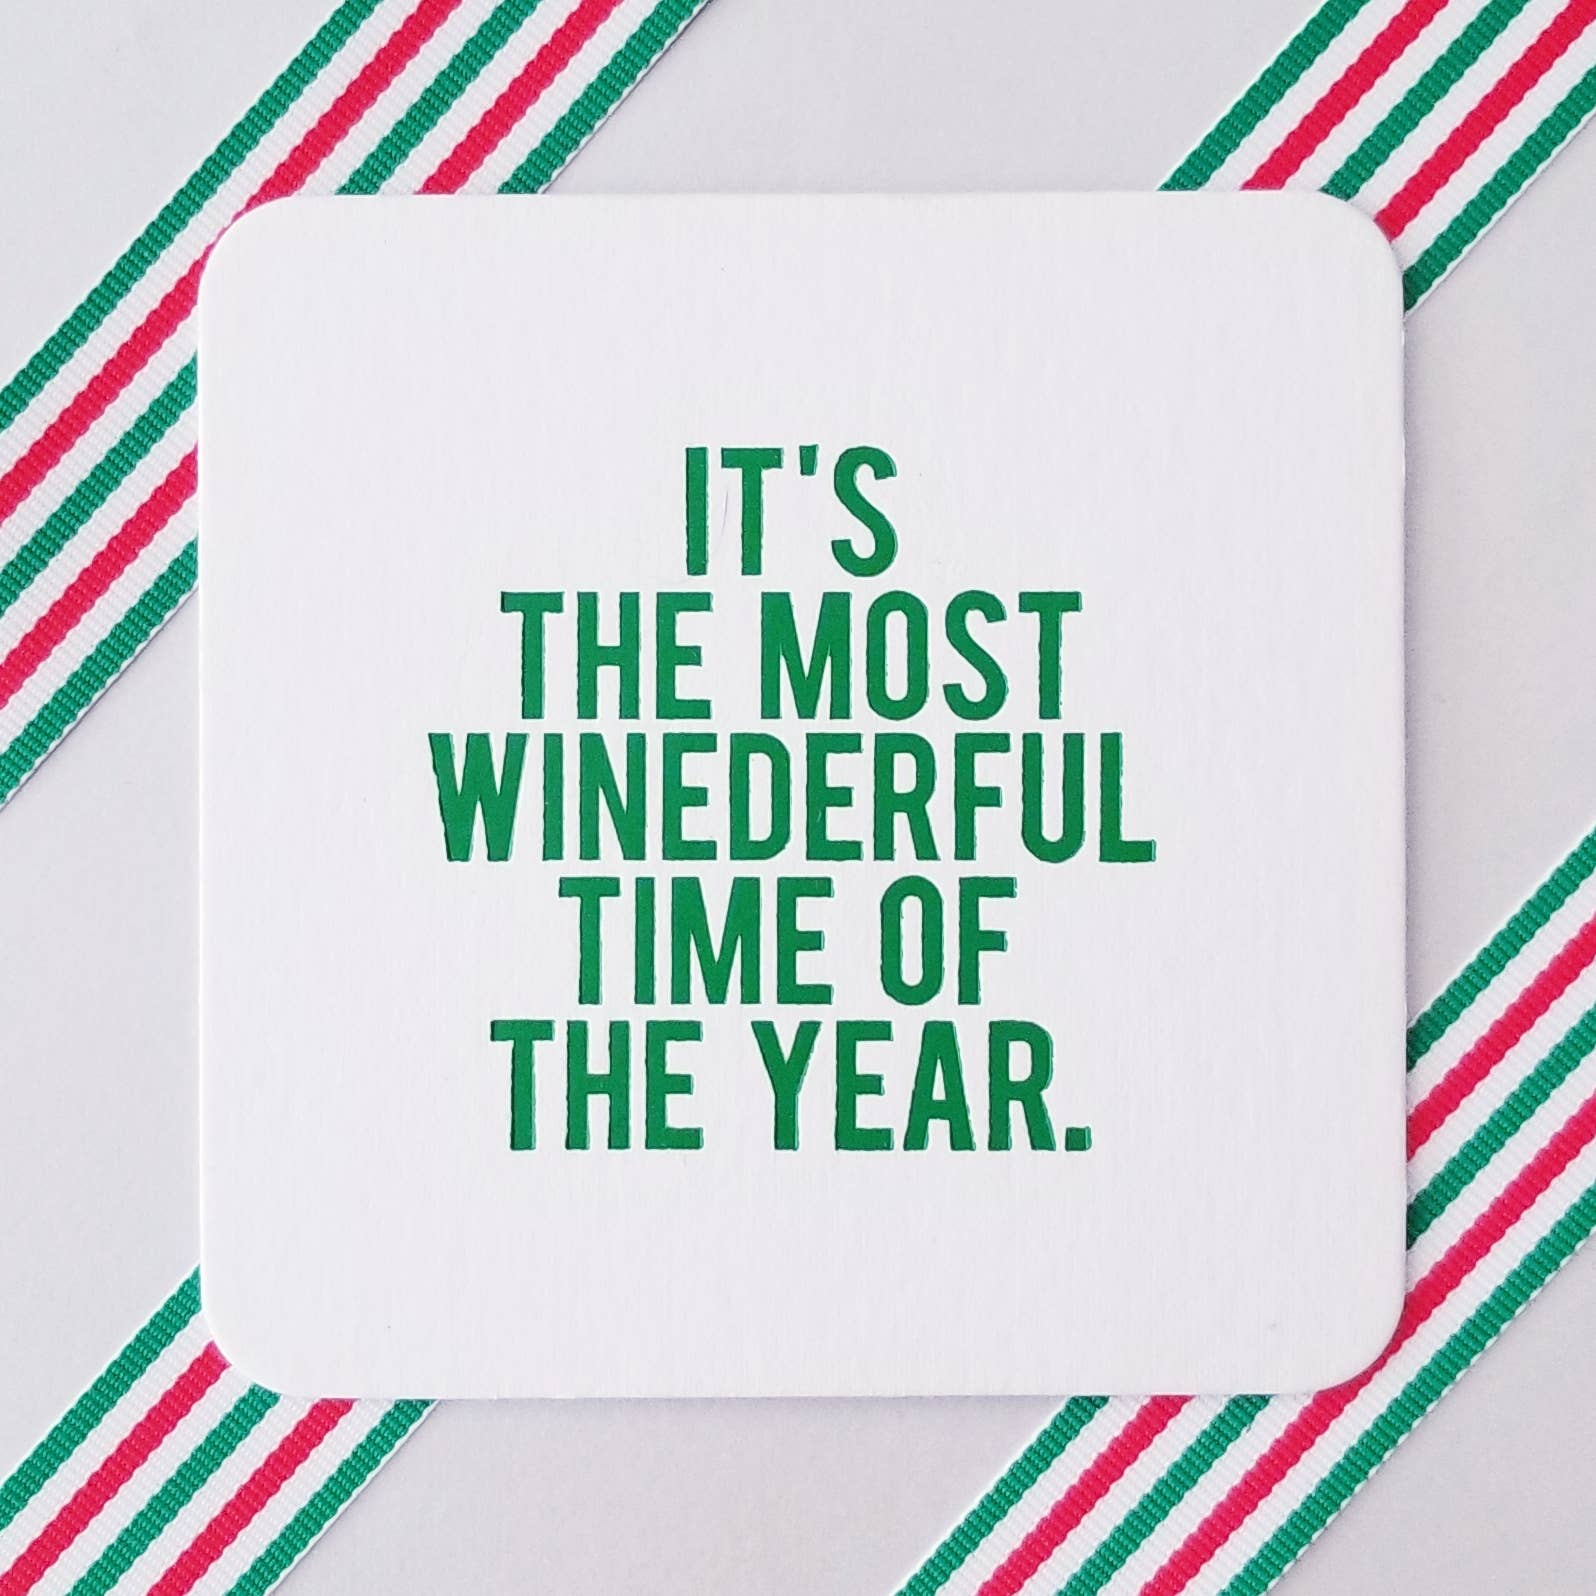 Winederful Time of Year Coasters